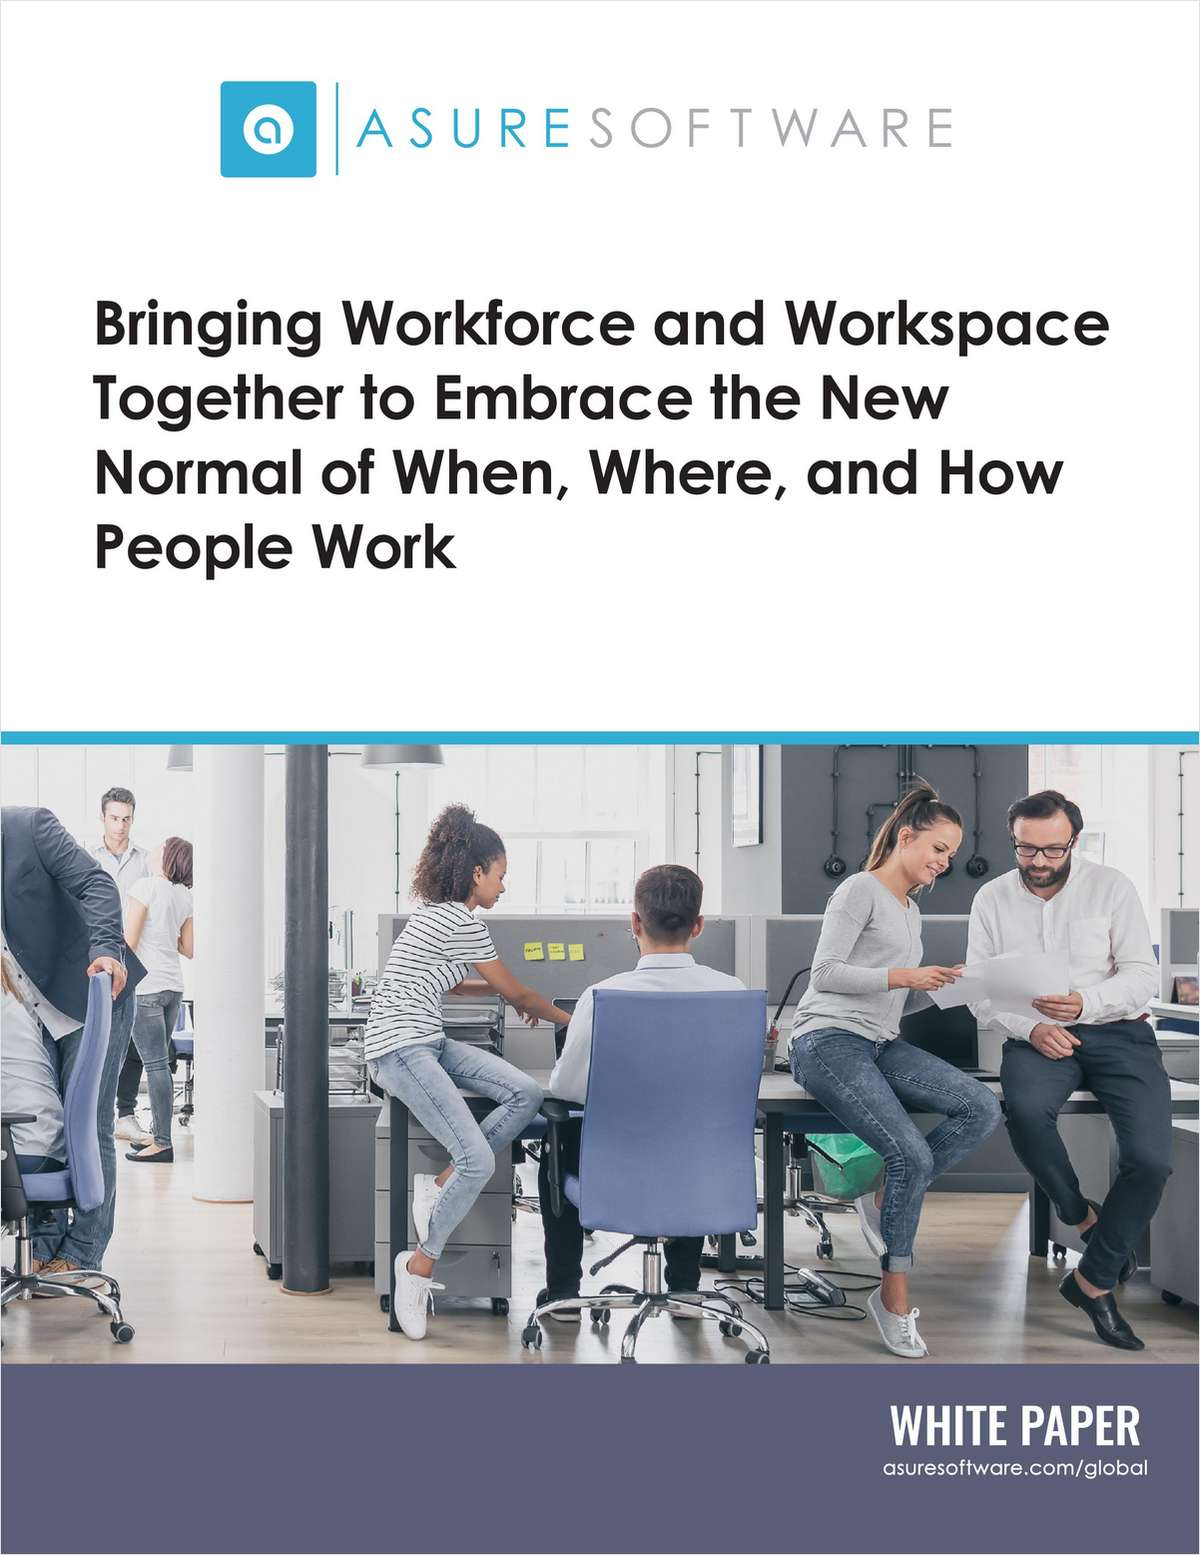 Bringing Workforce and Workspace Together to Embrace the New